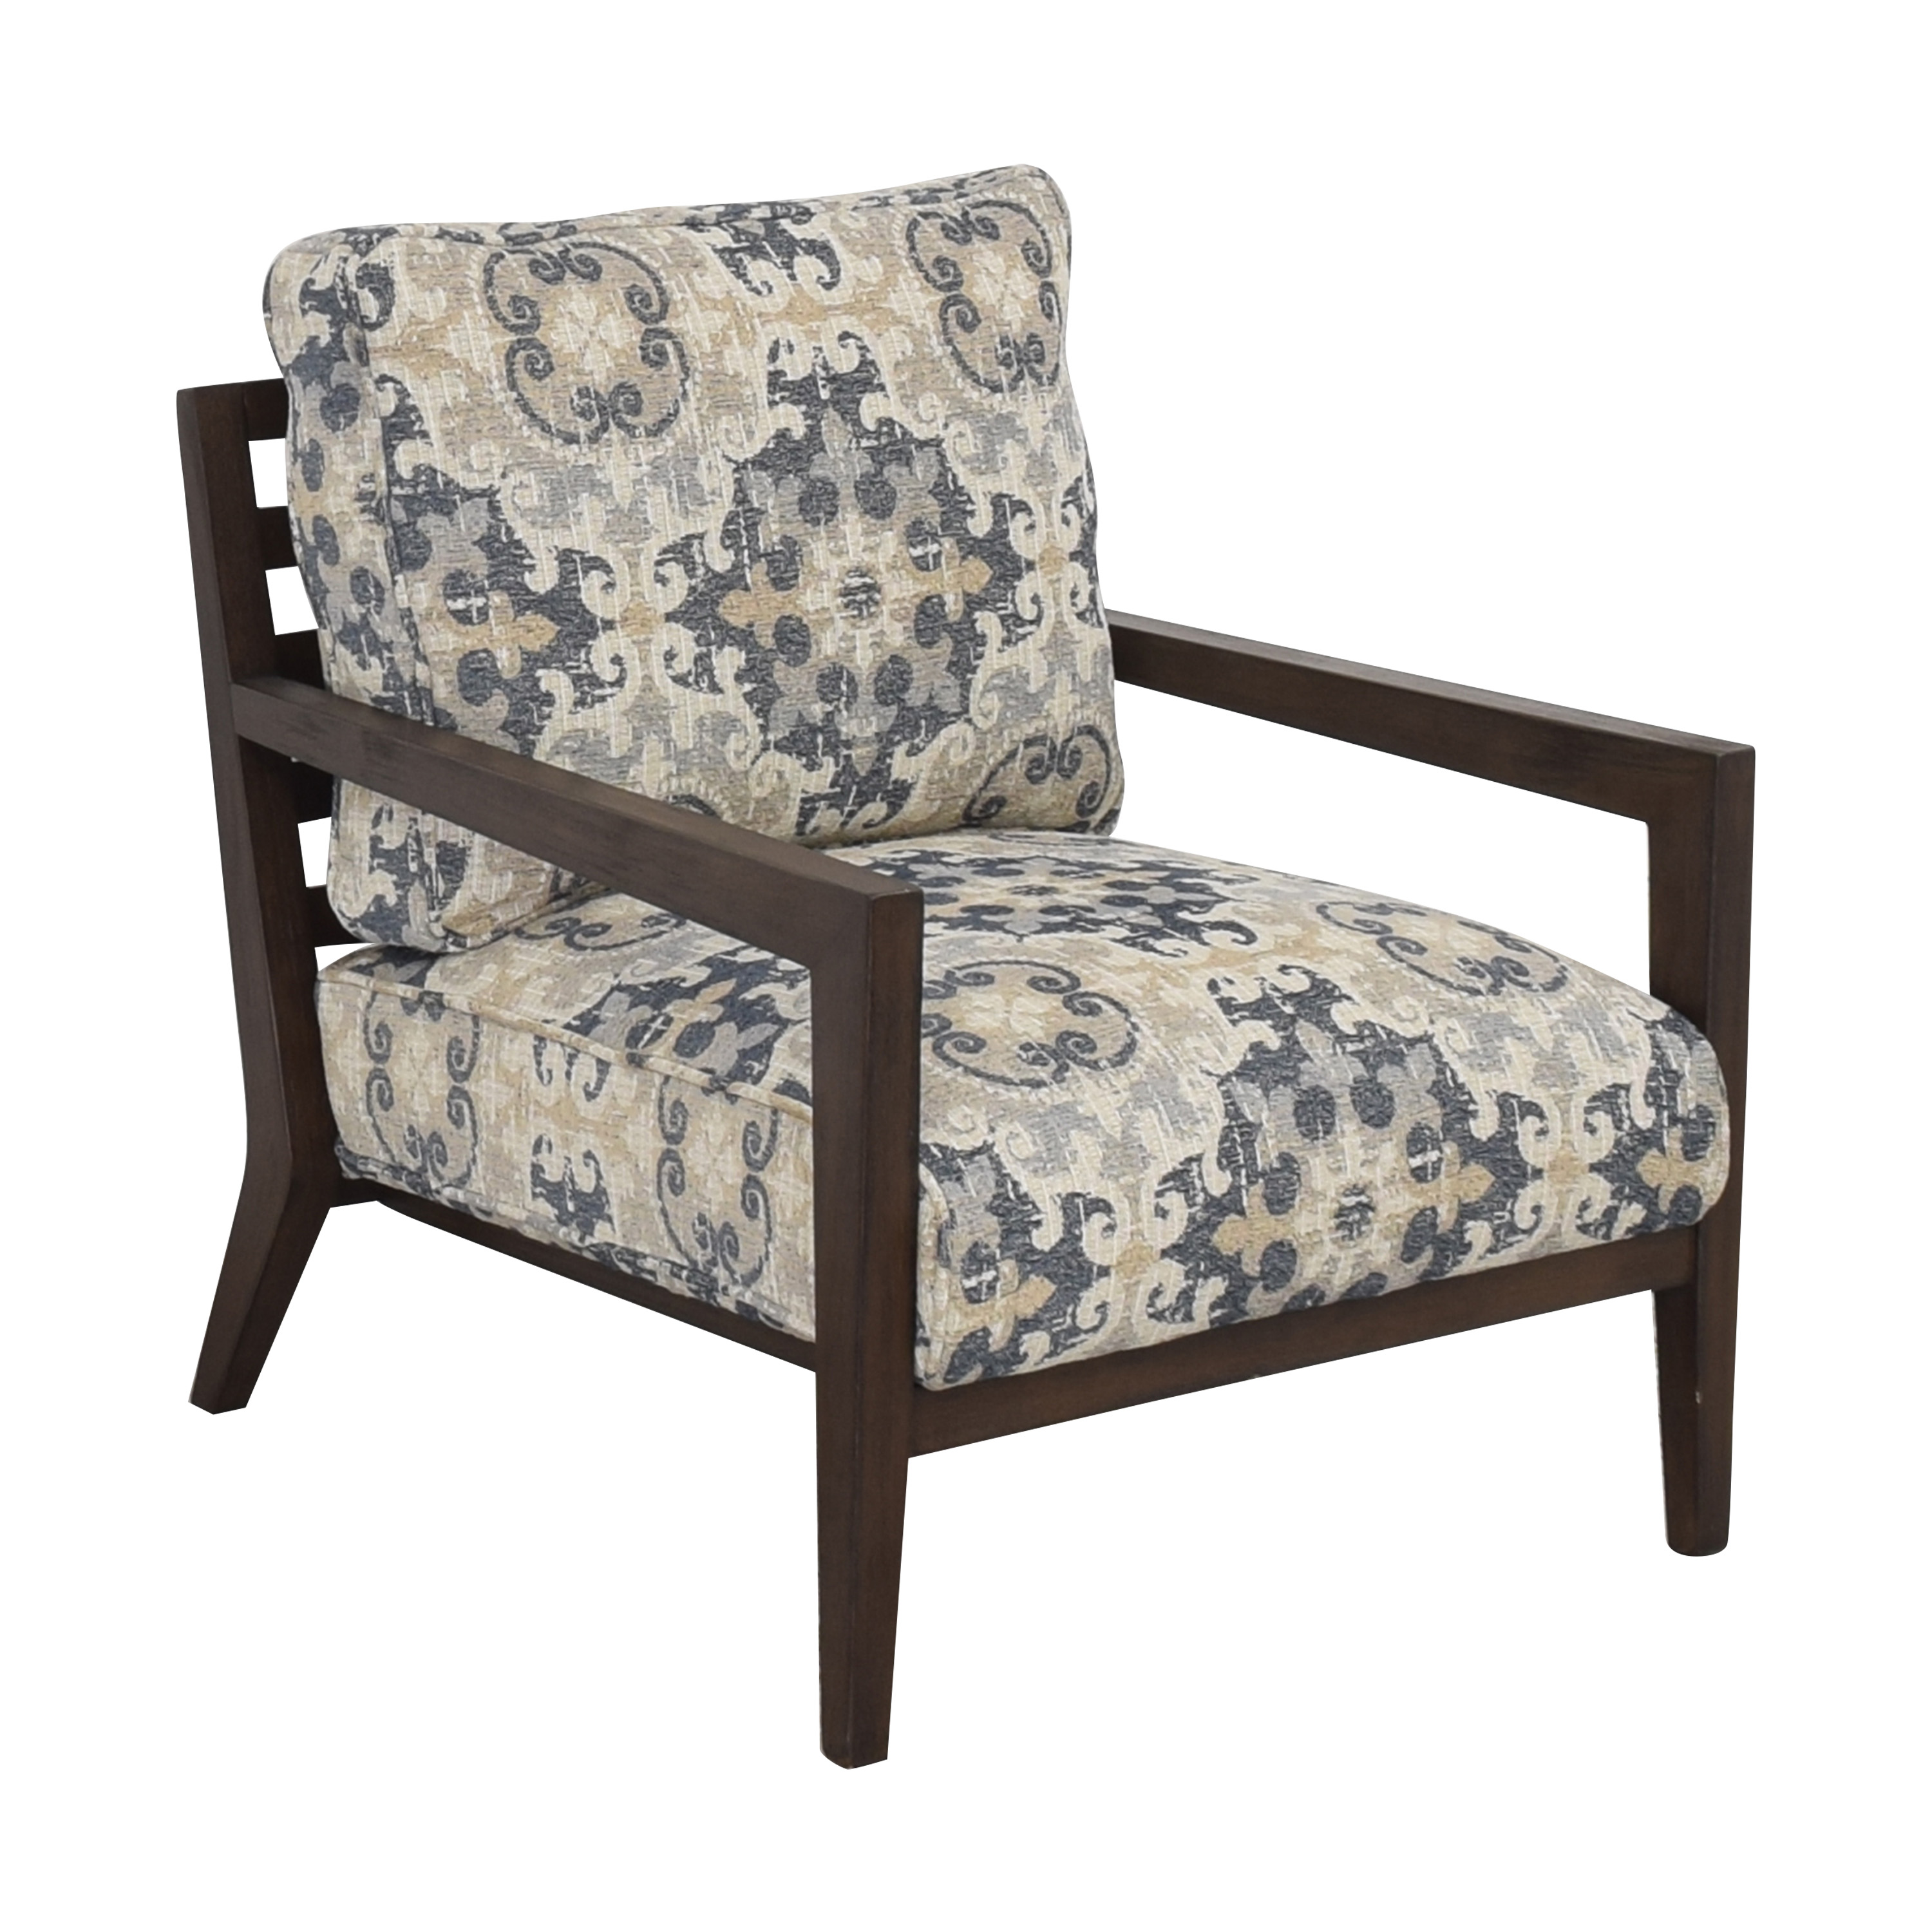 Raymour & Flanigan Raymour & Flanigan Cushioned Accent Chair price